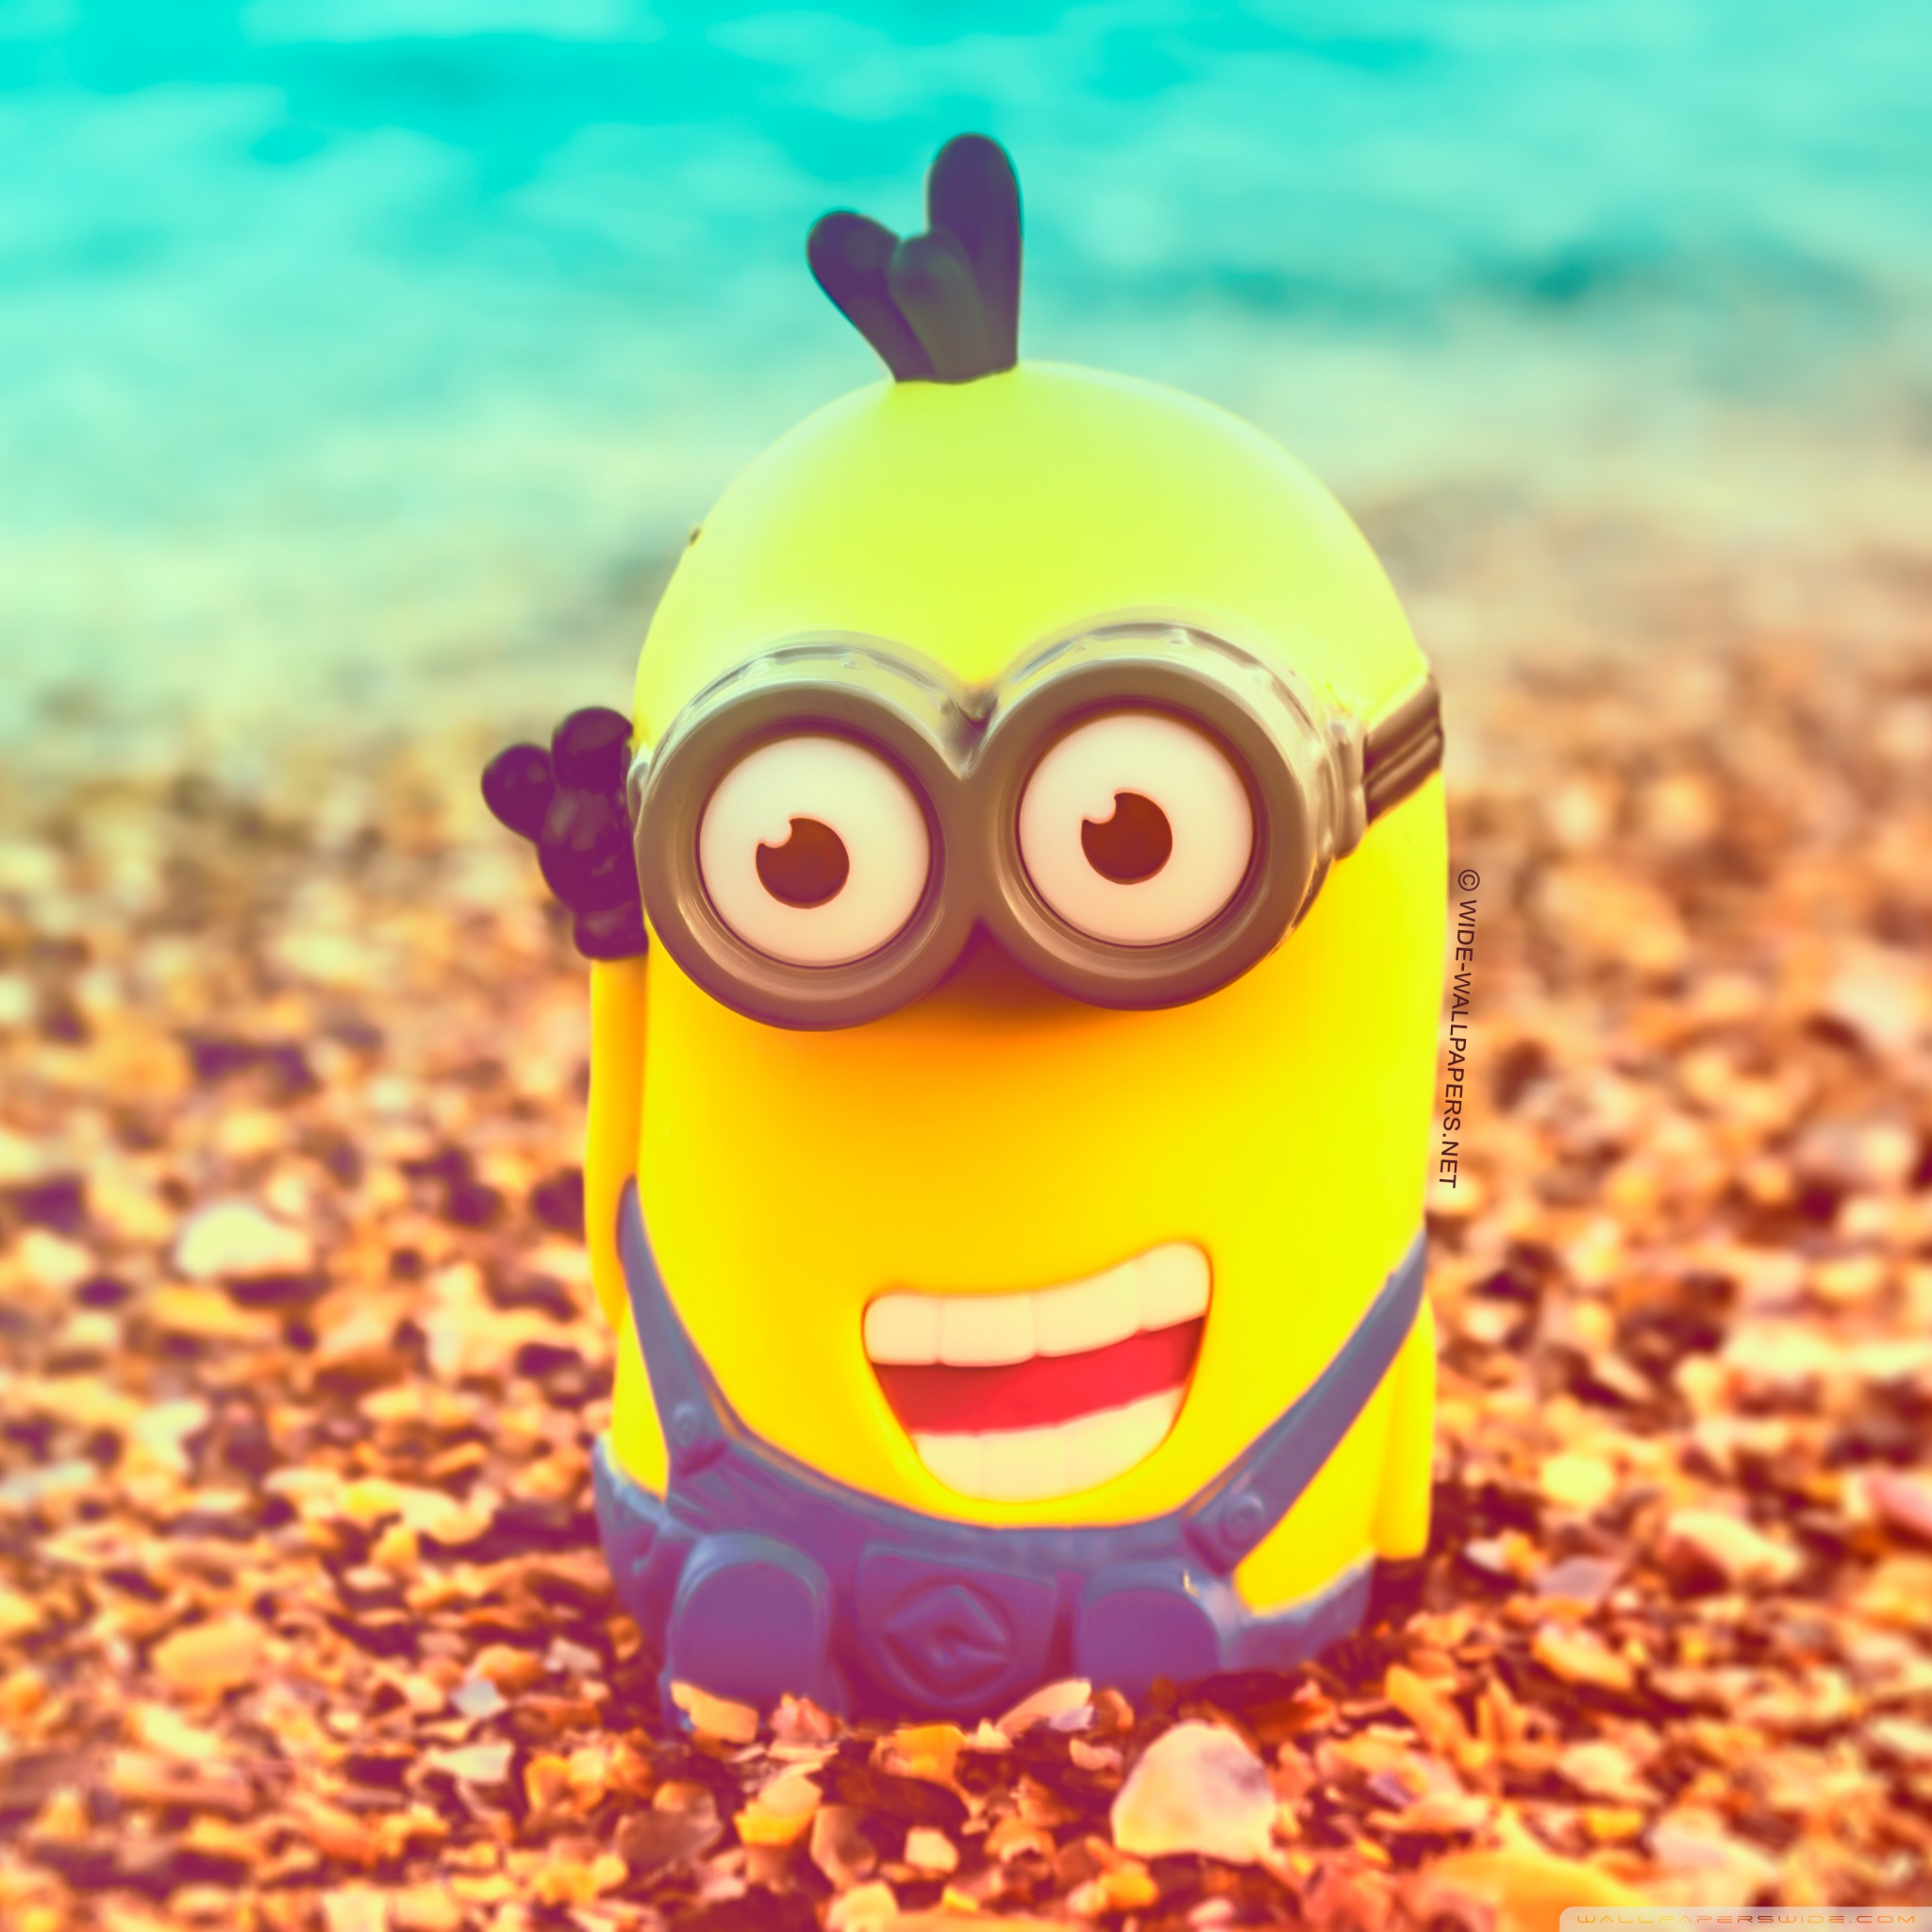 Cute Minions Wallpaper For IPads The Art Mad Wallpapers 2048x2048